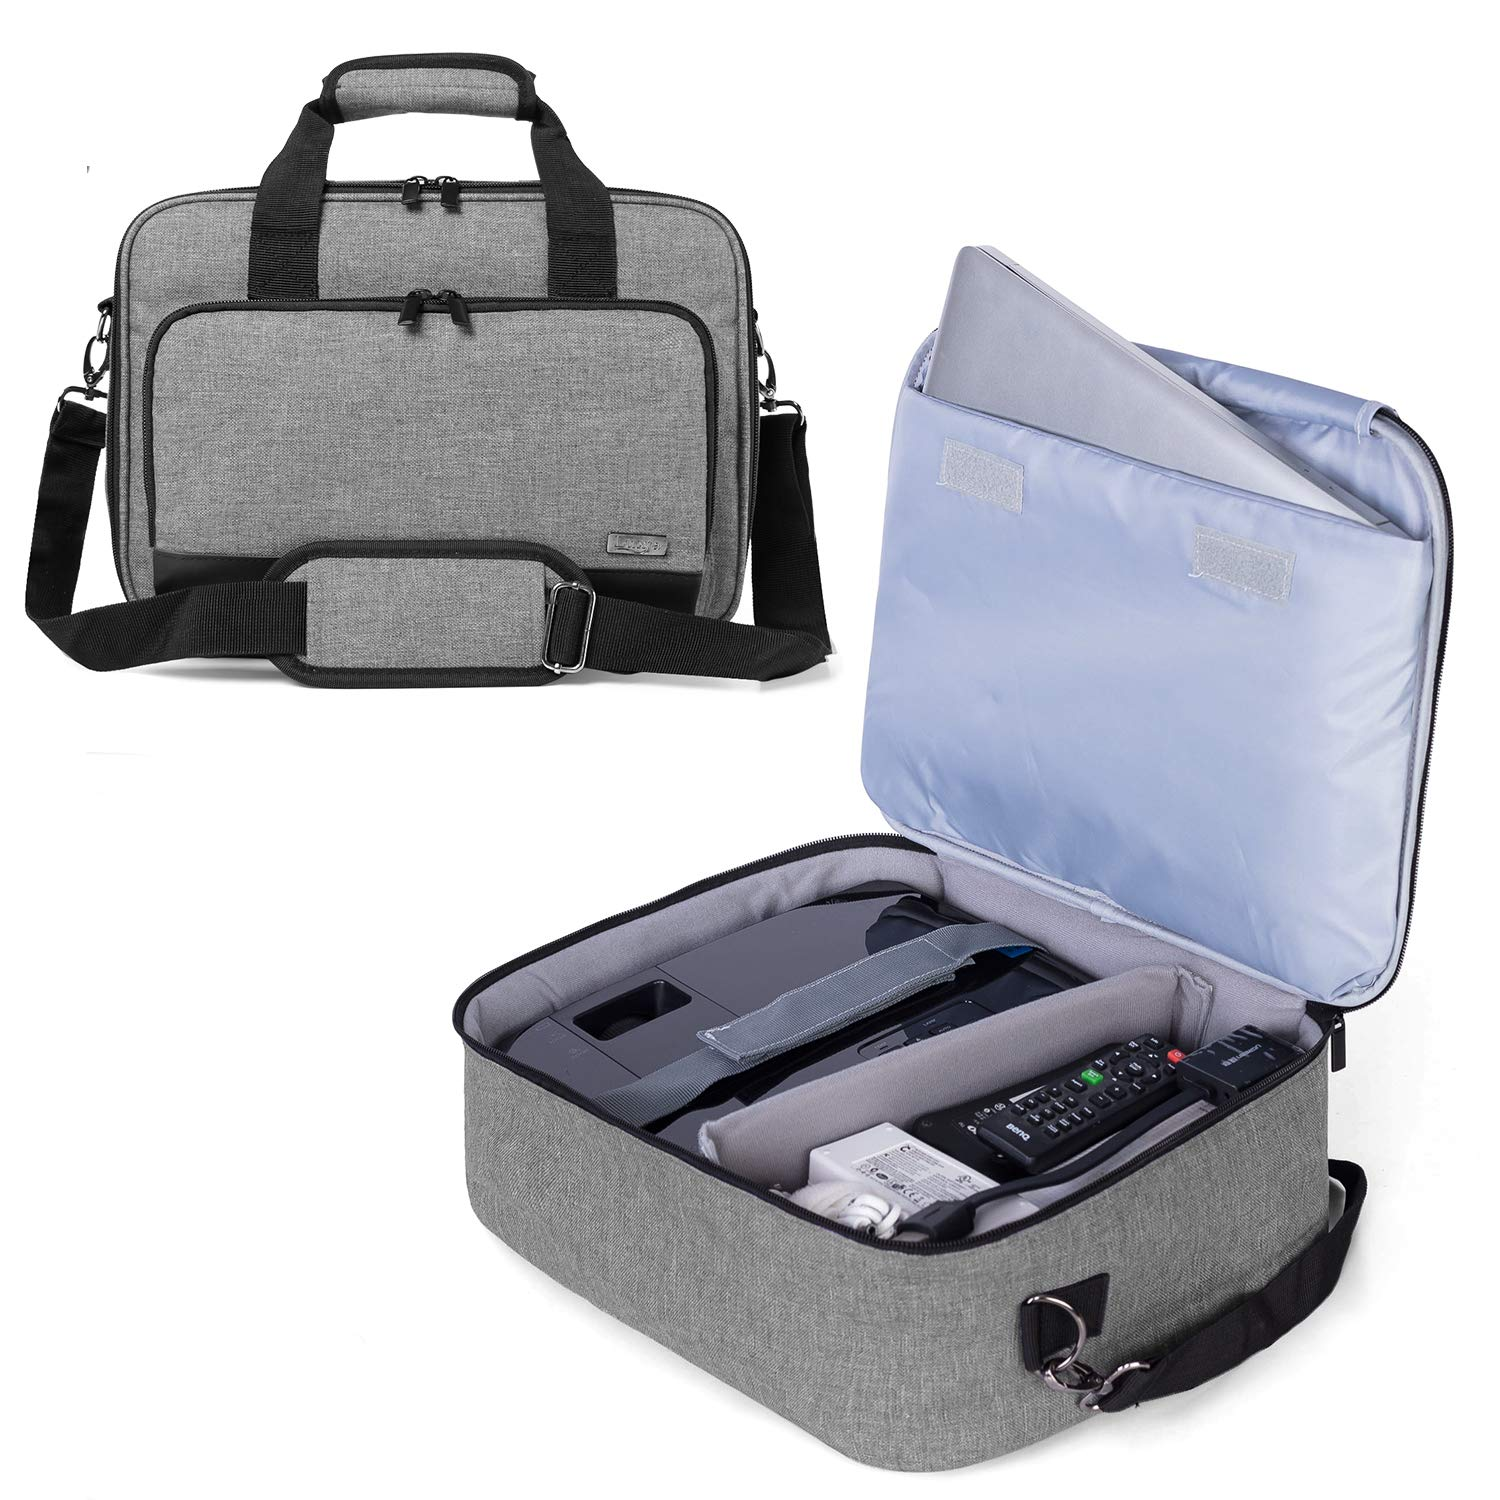 Luxja Projector Case, Projector Bag with Protective Laptop Sleeve, Projector Carrying Case with Accessories Pockets (Compatible with Most Major Projectors), Gray by LUXJA